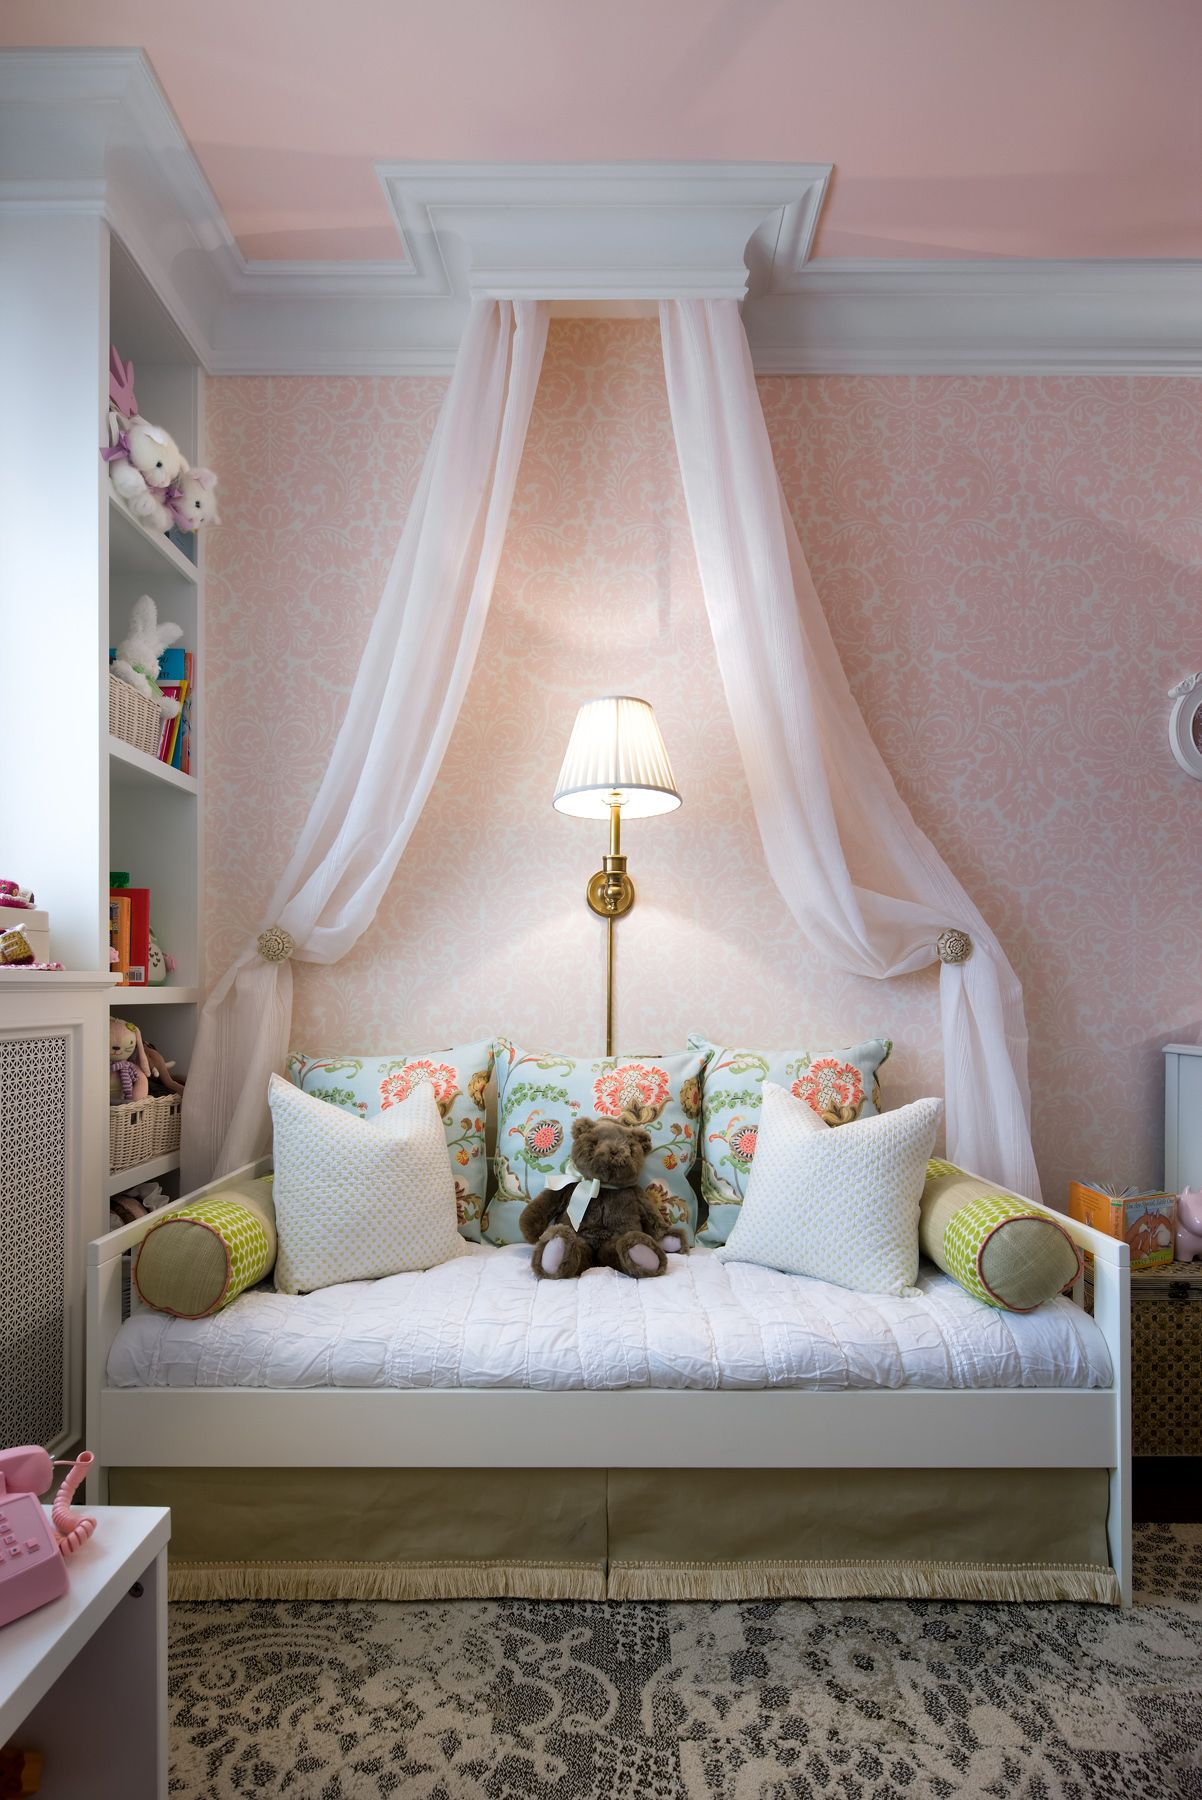 Pin by HGTV on HGTV Shows & Experts | Girls daybed room ...